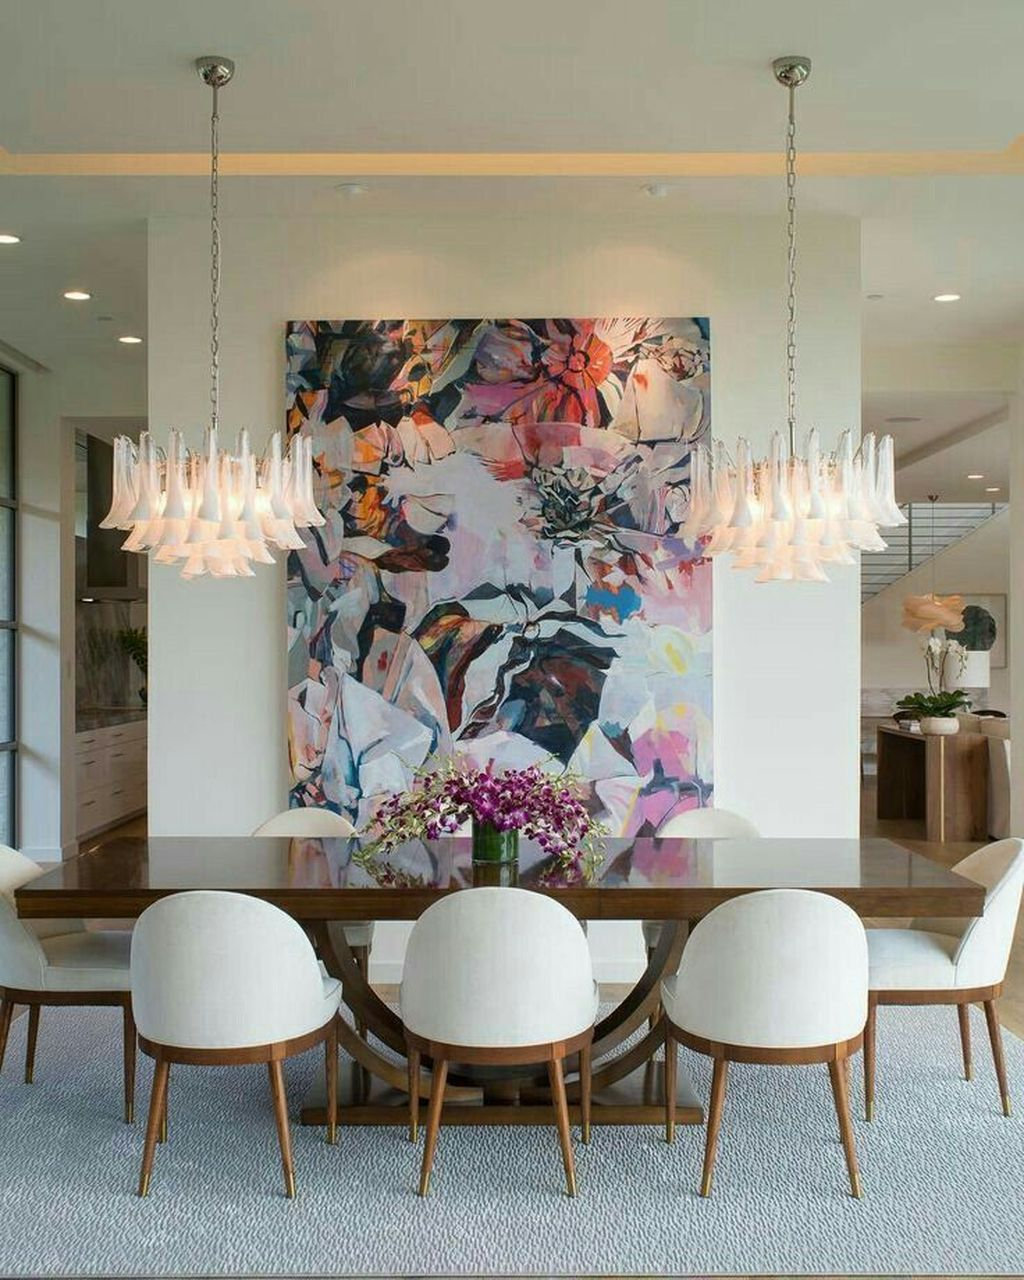 Admirable Dining Room Design Ideas You Will Love 12